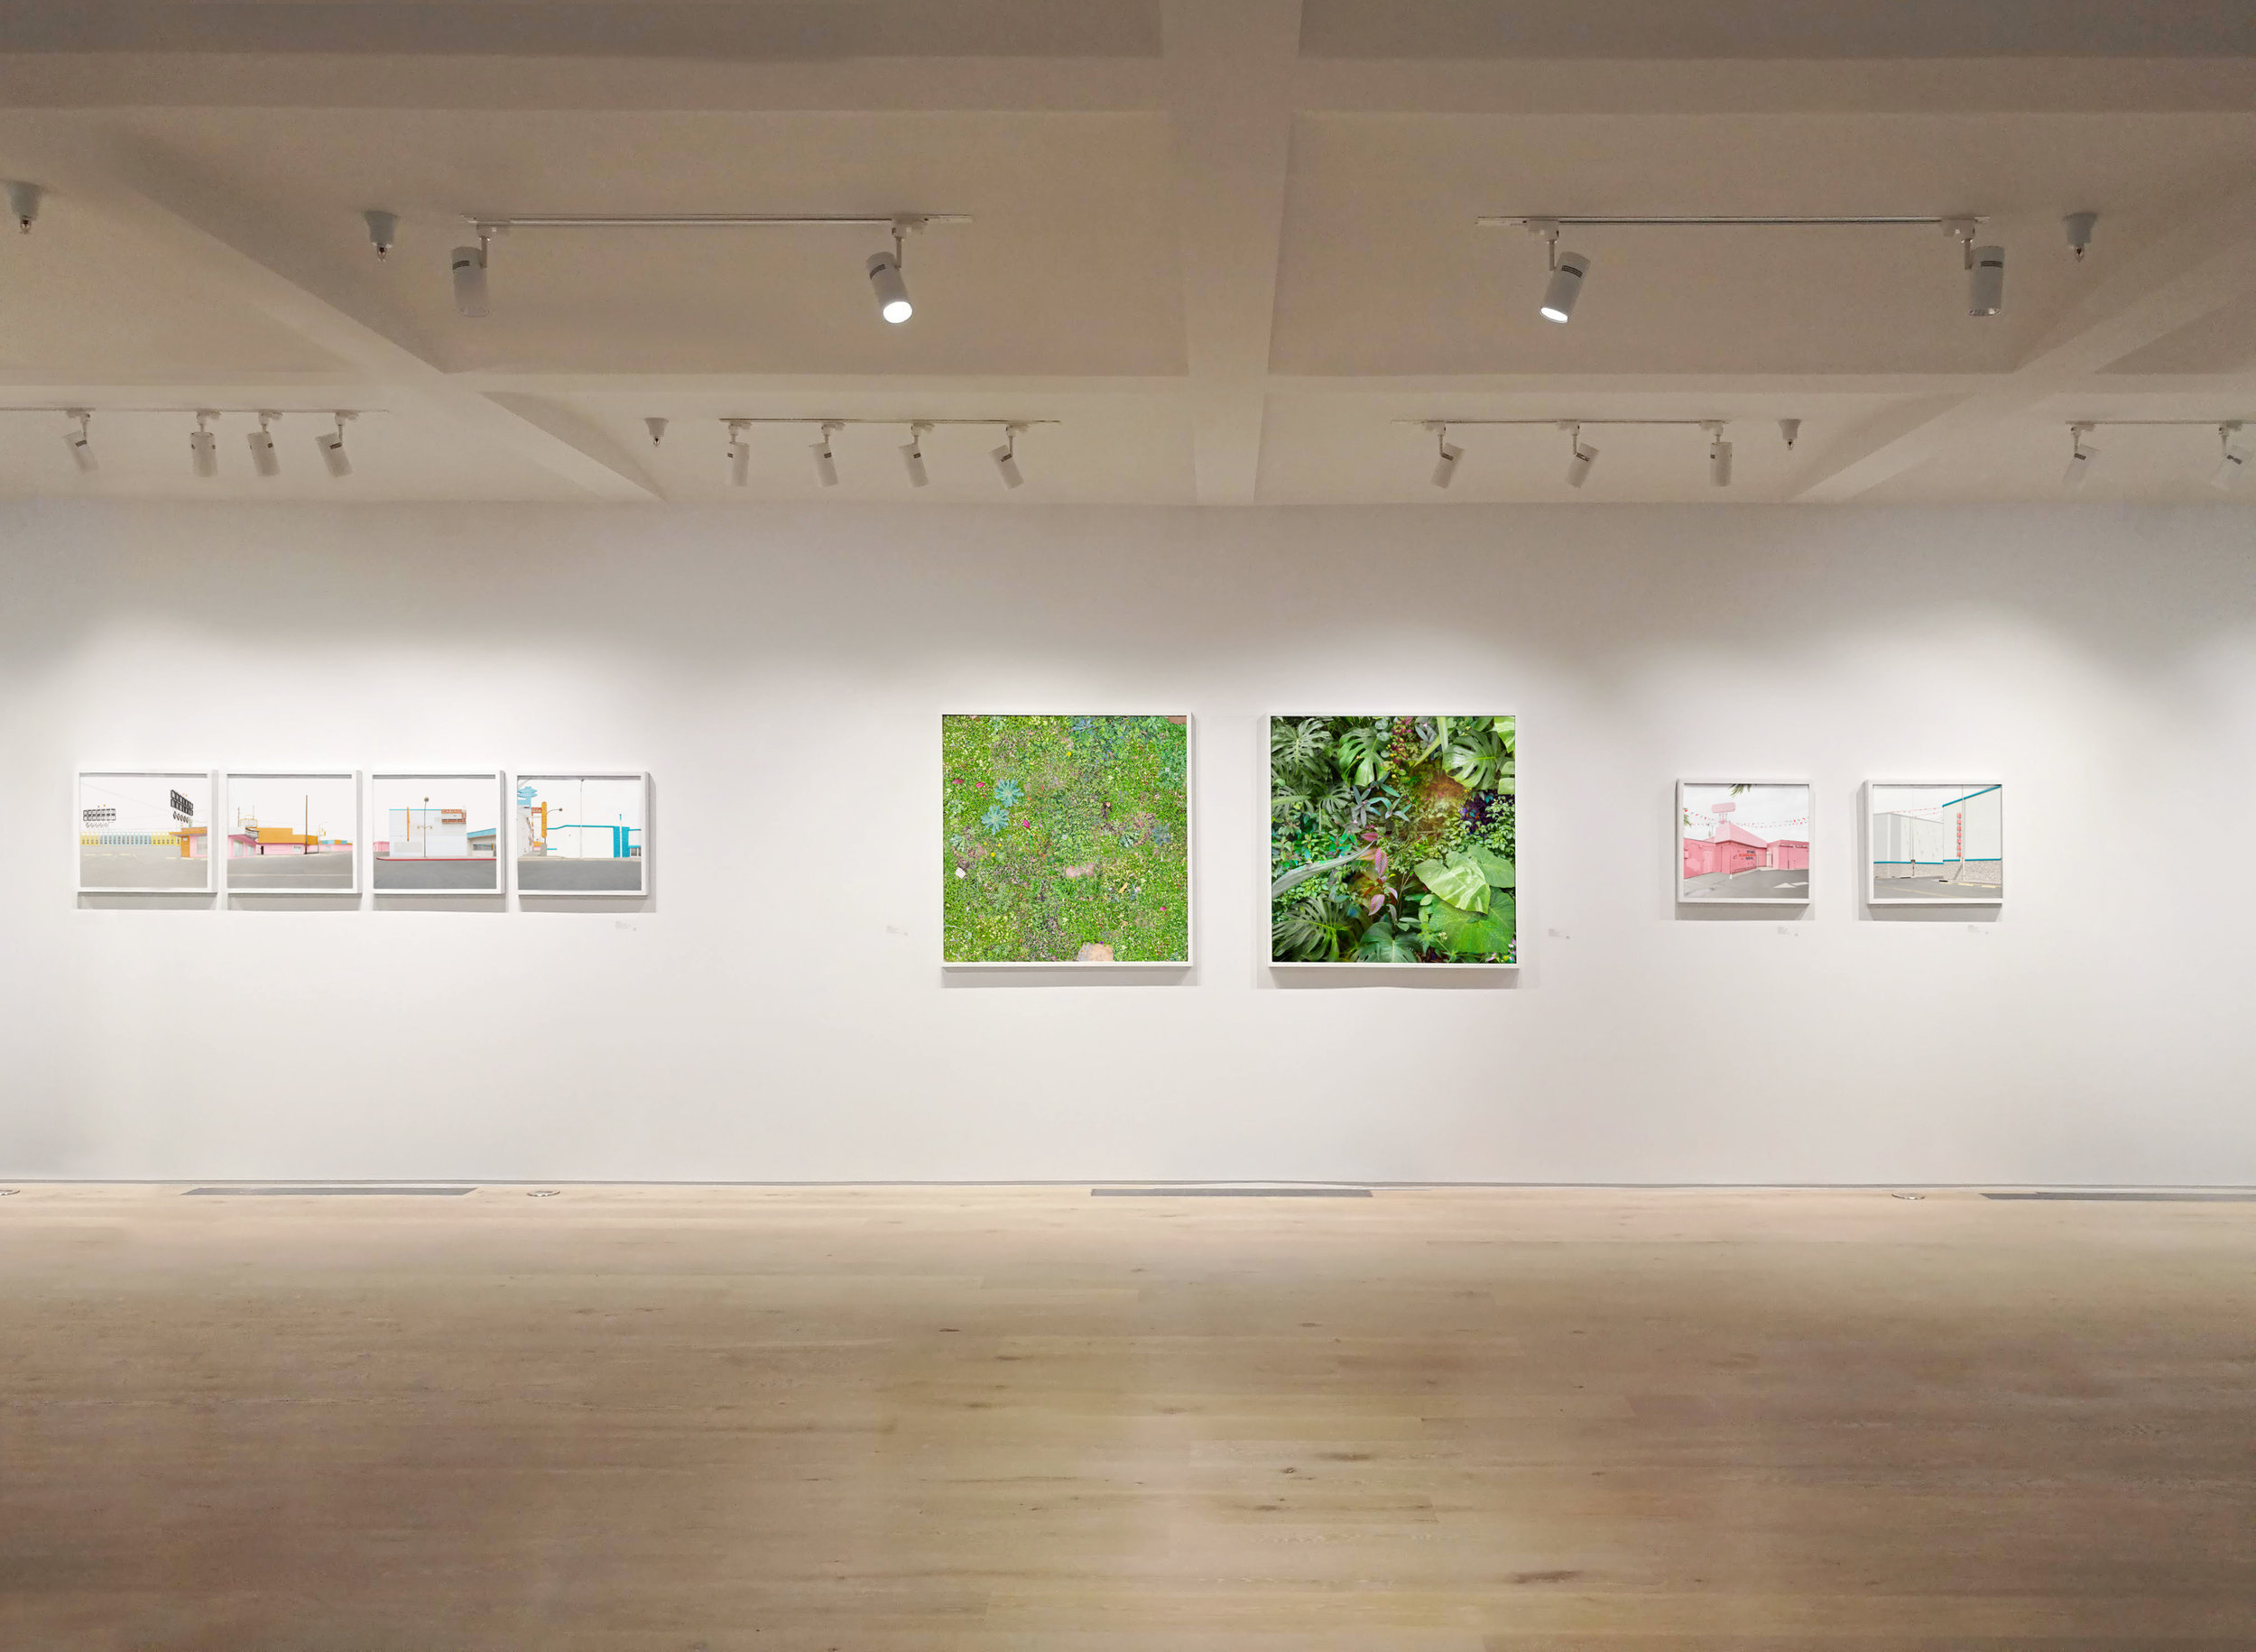 Installation View,  This Place  exhibition at Pictura Gallery, Bloomington, IN, 2019